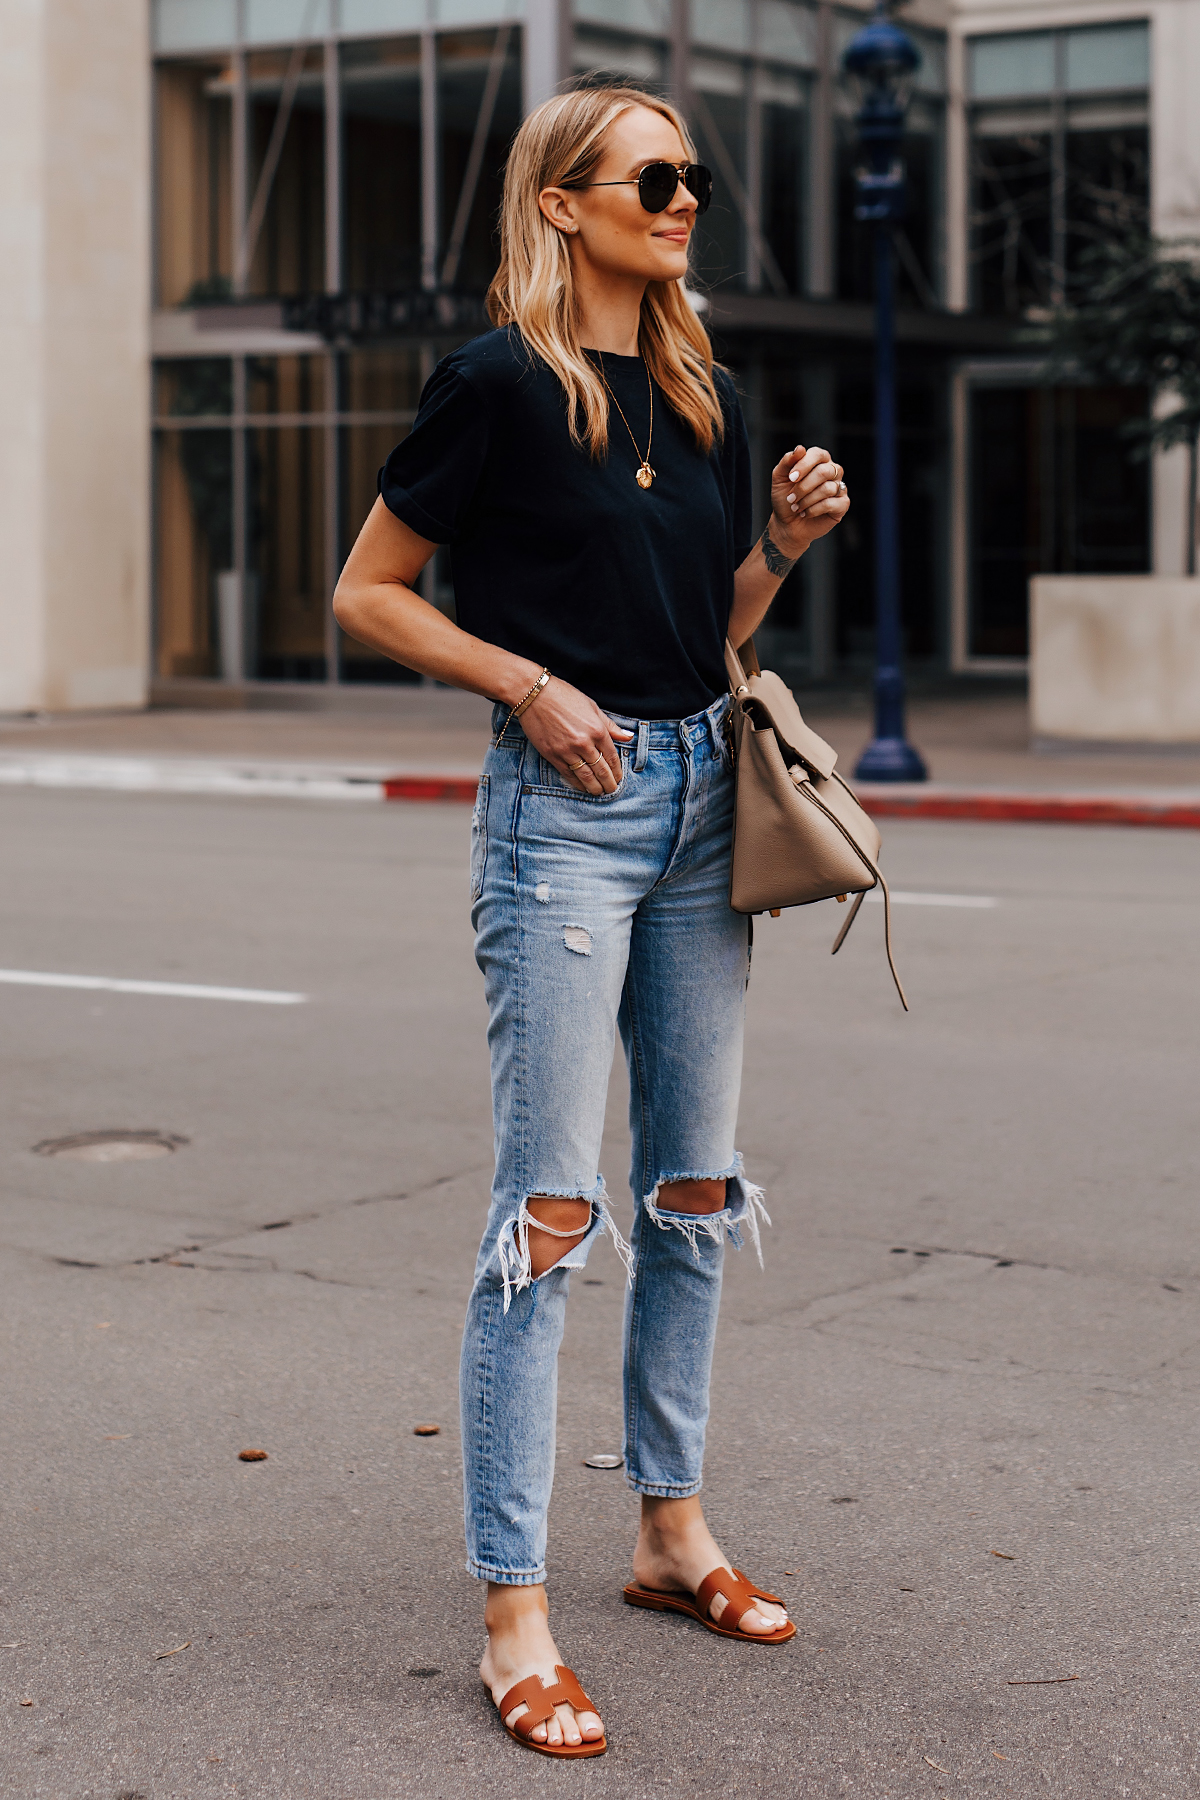 Blonde Woman Wearing Black Tshirt Boyish Ripped Jeans Hermes Oran Gold Sandals Fashion Jackson San Diego Fashion Blogger Street Style